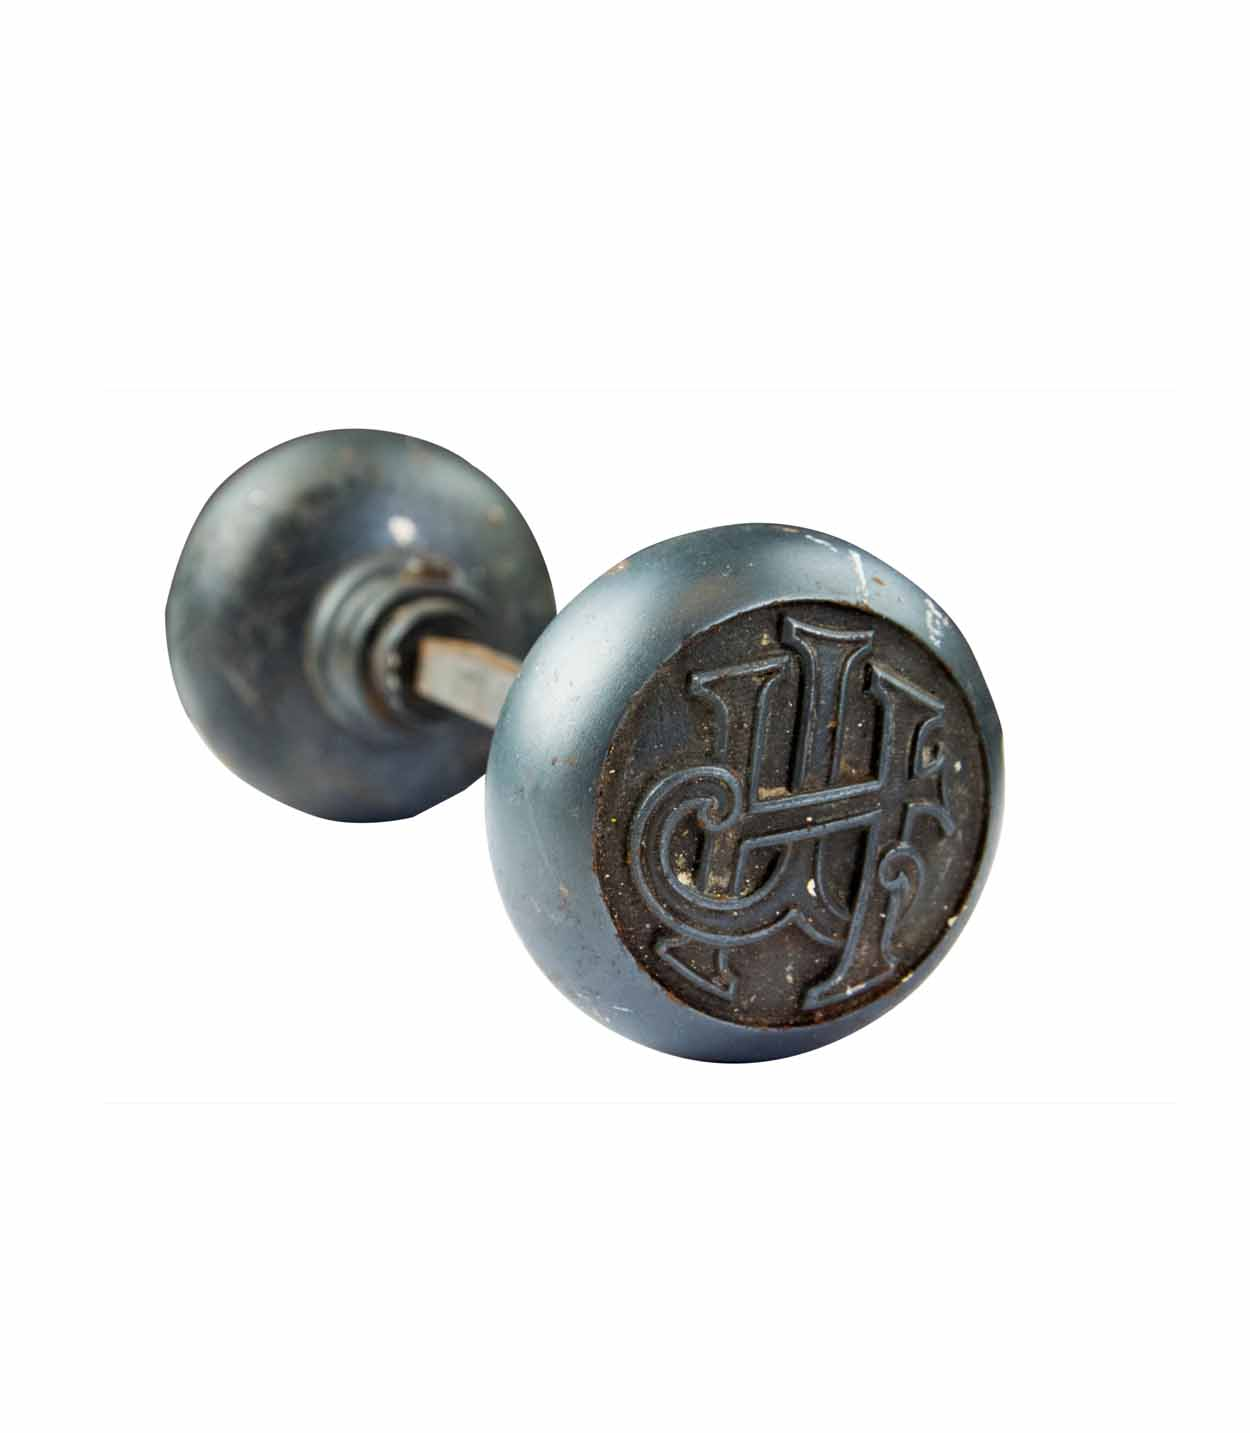 HOTEL JEFFERSON MONOGRAM IRON KNOB SET AA# H20184   9 sets available $165.00 each set